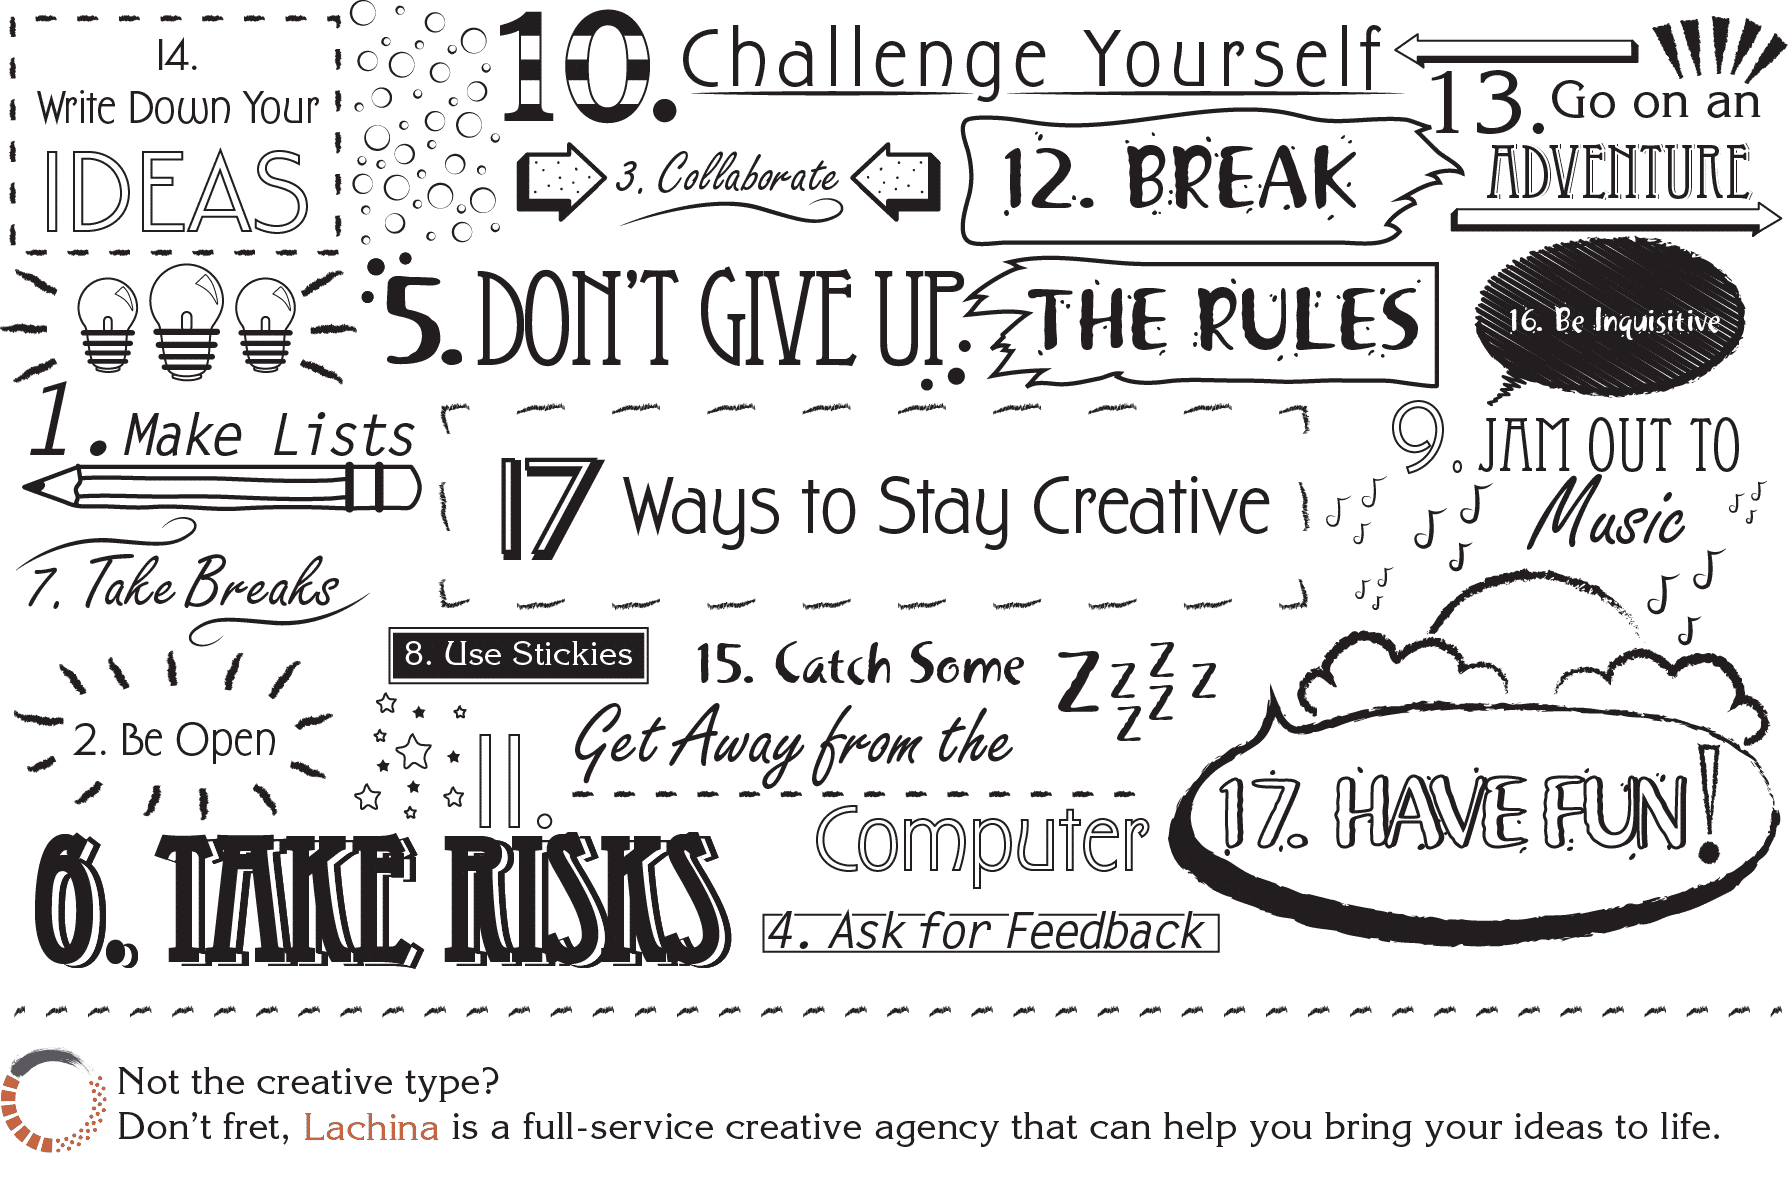 17 Ways to Stay Creative Infographic